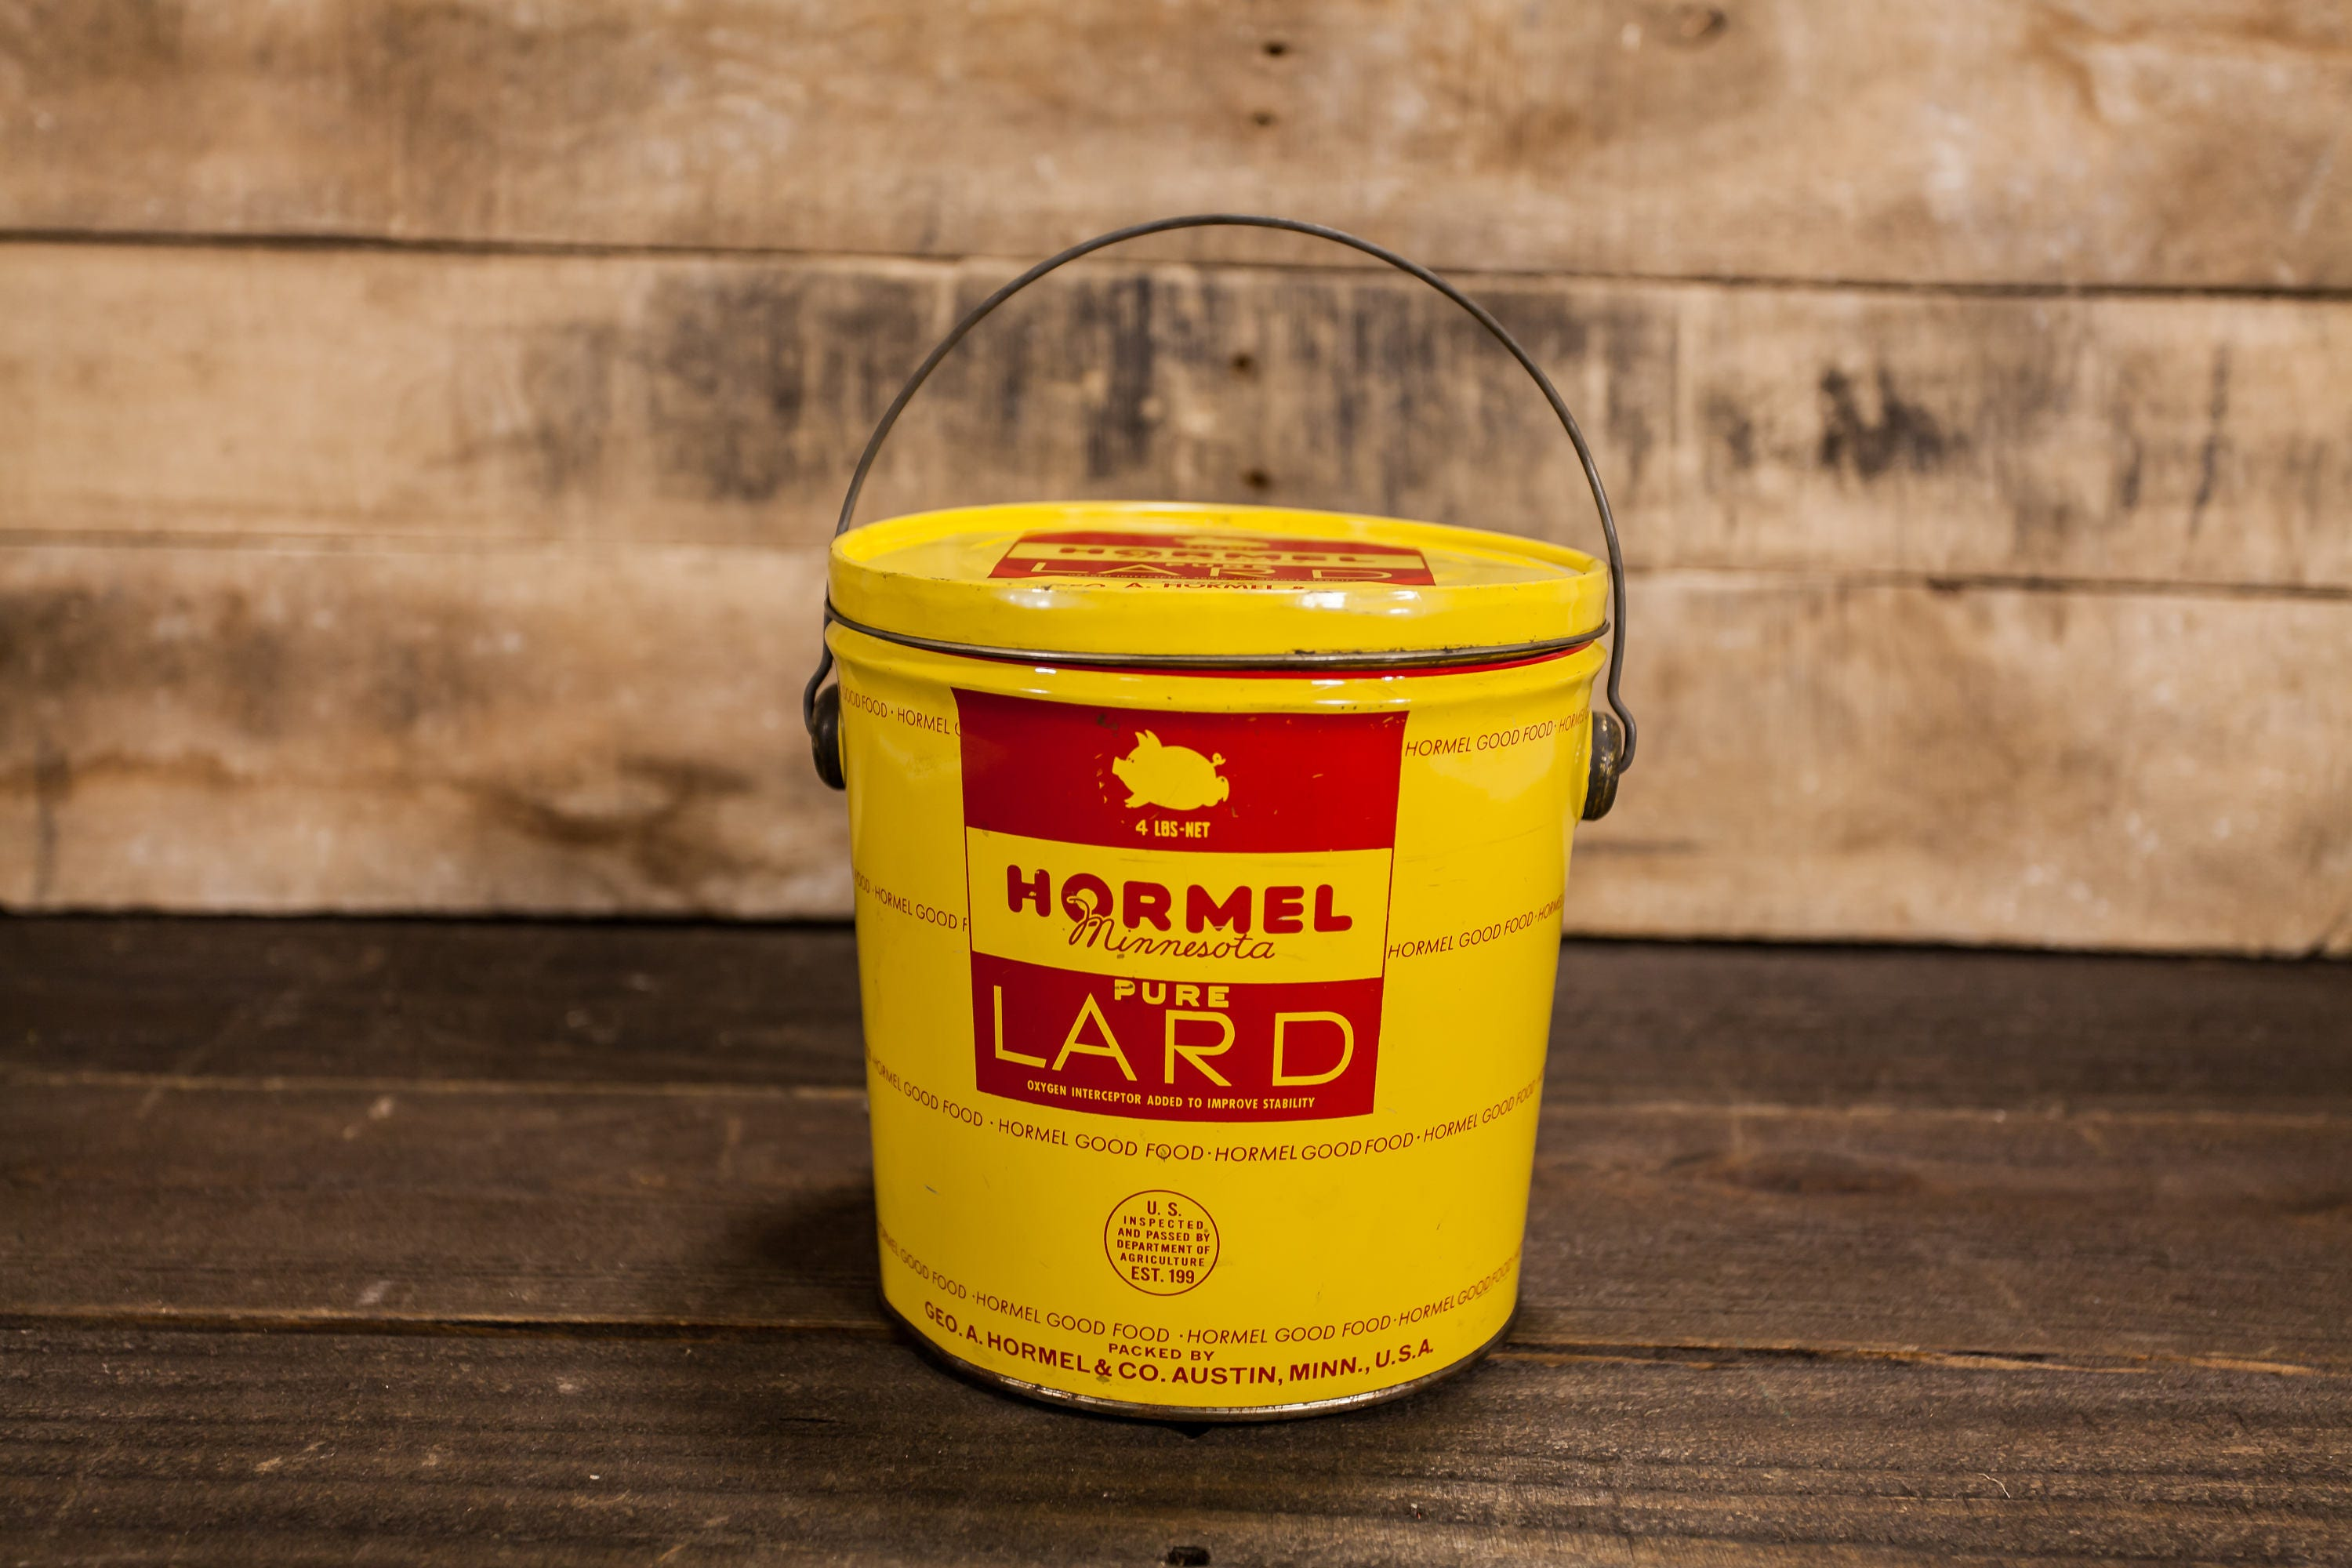 Vintage Hormel Pure Lard 4lbs Tin Red Yellow Kitchen Country Decor Advertising Container Storage Pig Minnesota